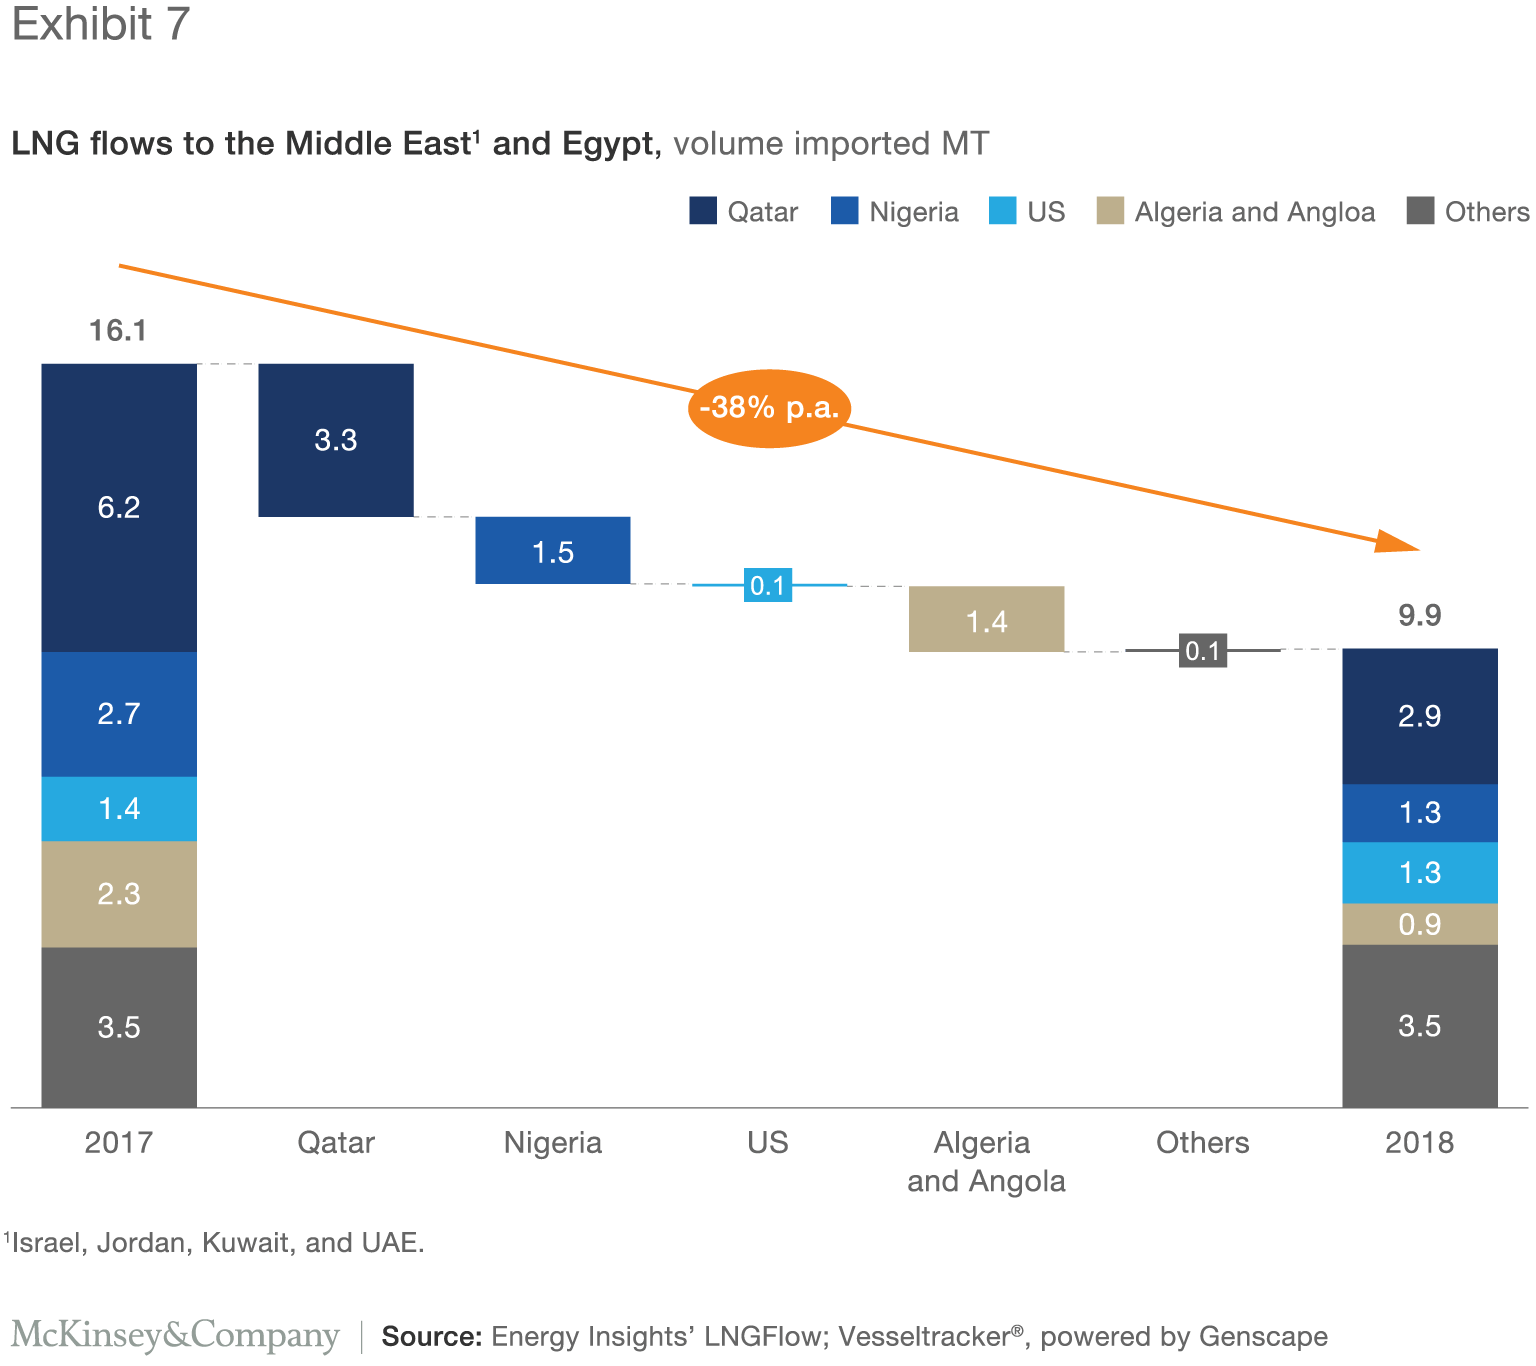 15 key insights from the 2018 LNG market